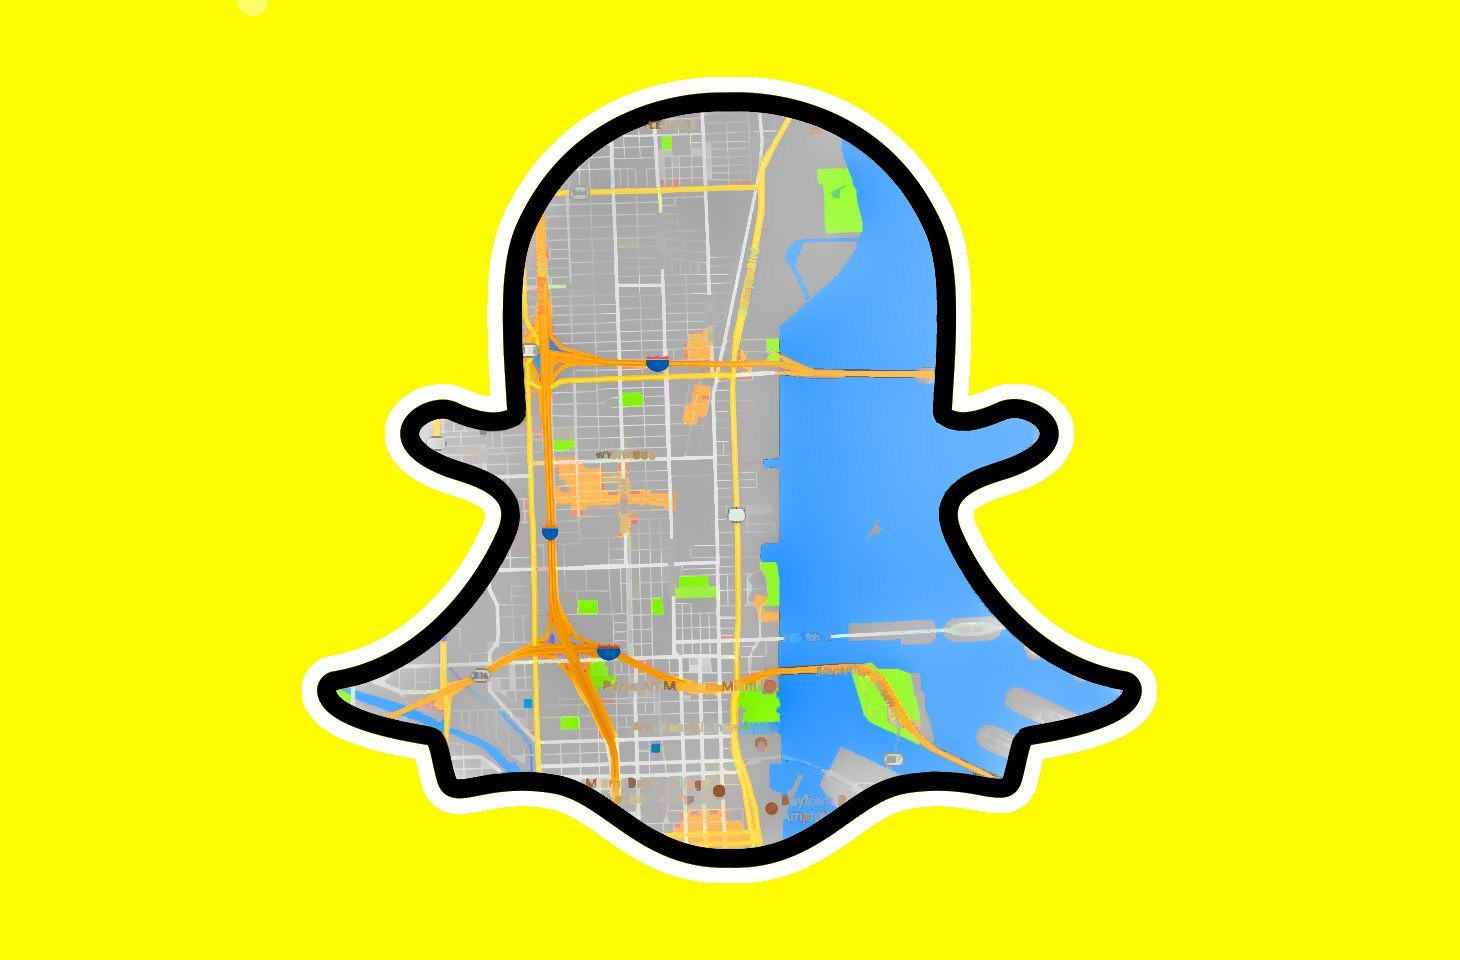 Snap Map privacy and security concerns